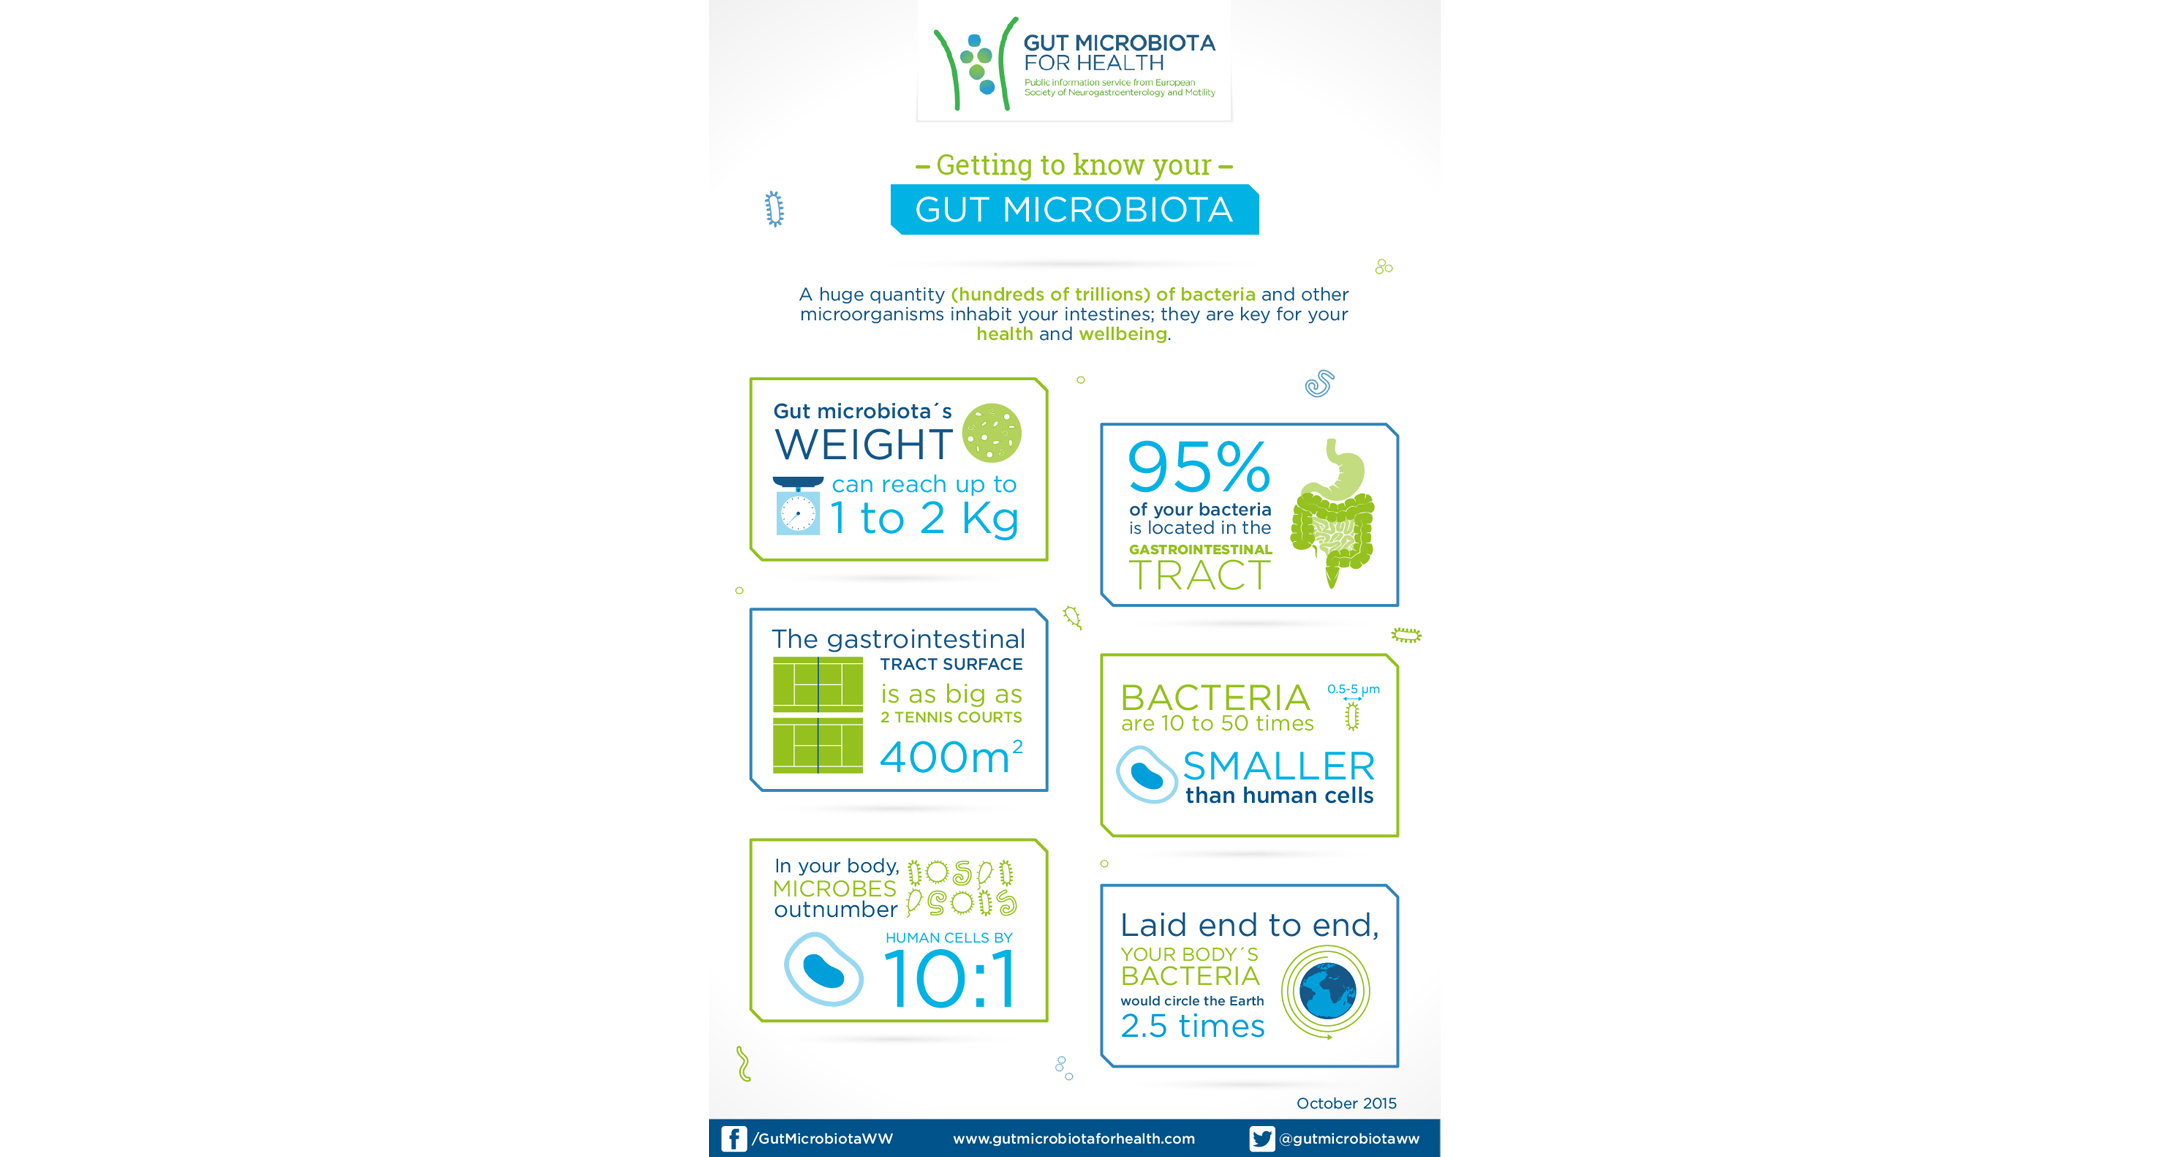 Getting to know your gut microbiota_EN